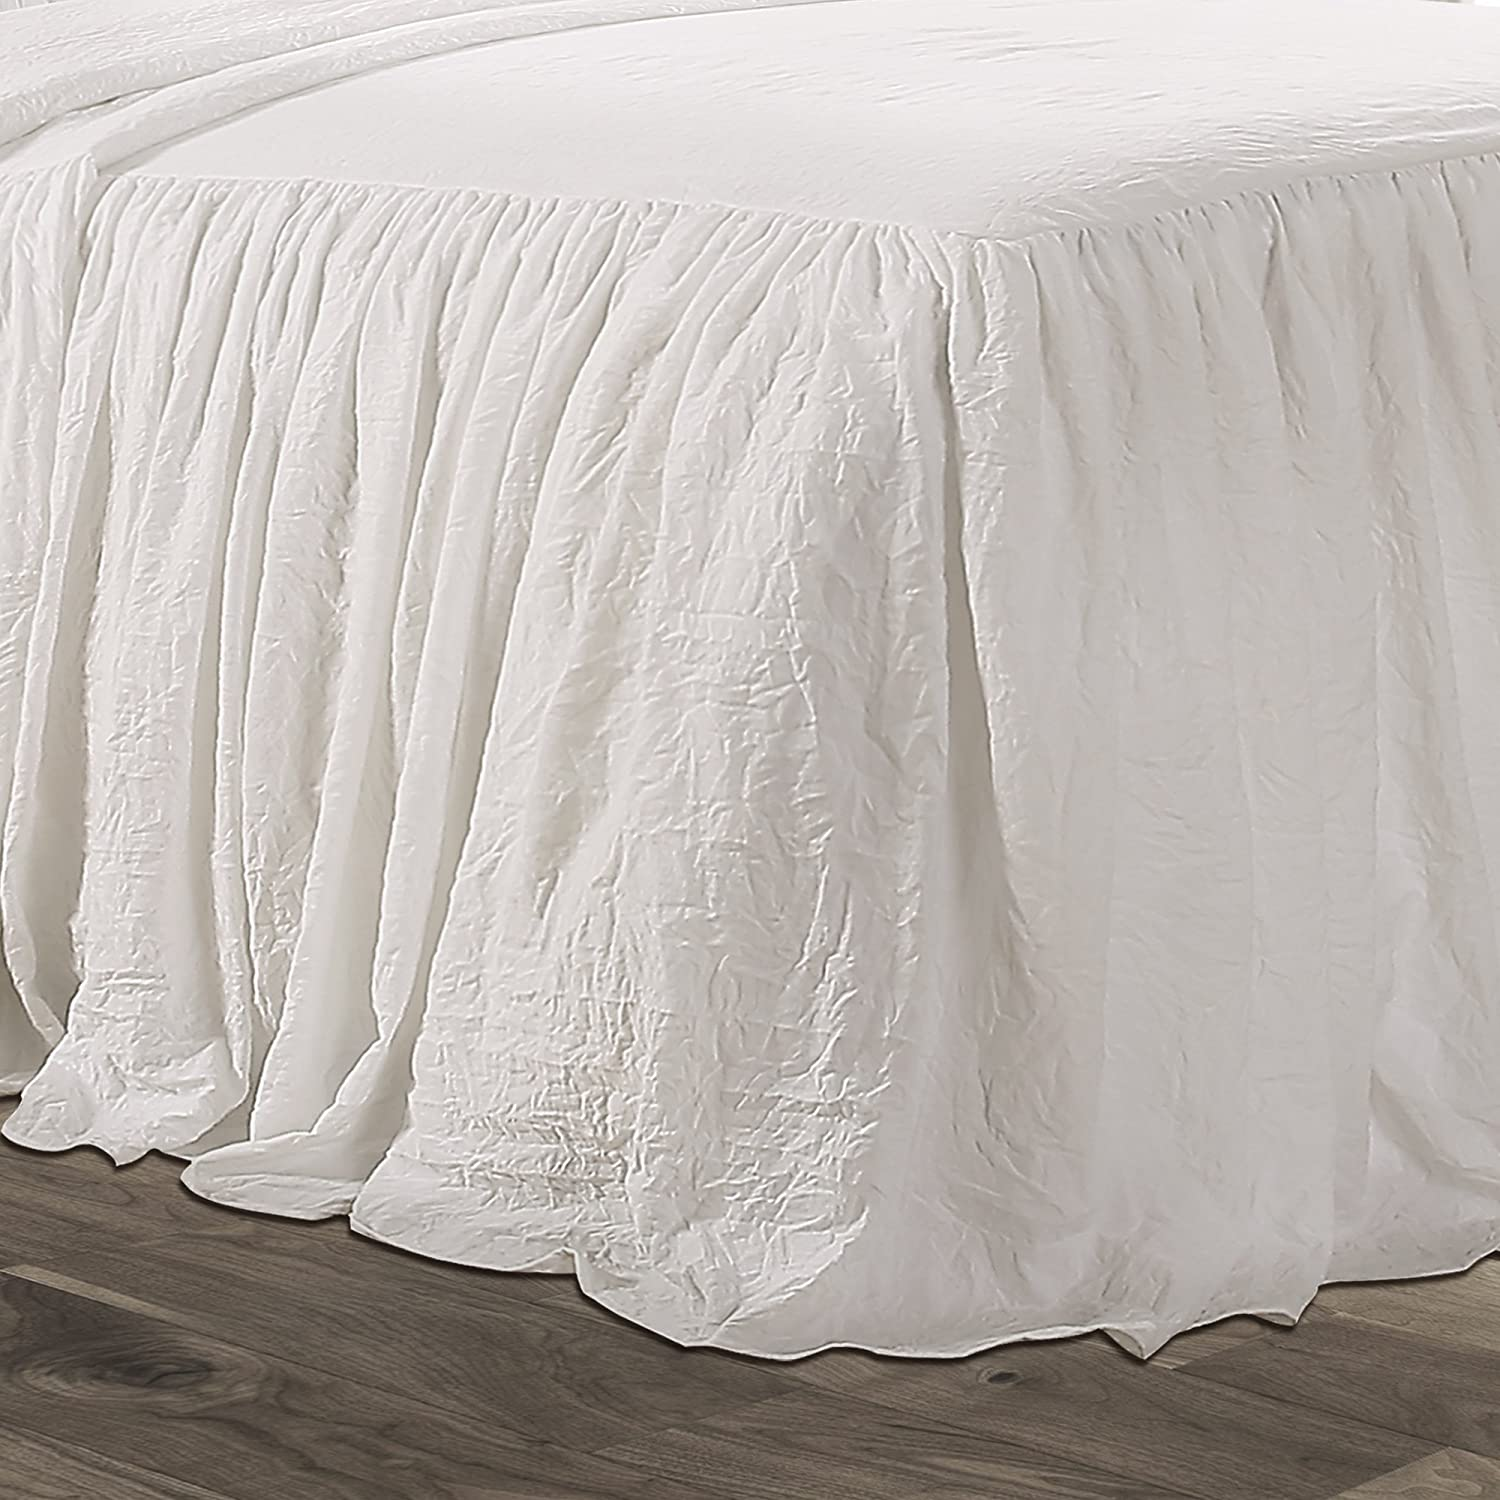 """1 MULTI LAYERED RUFFLE BEDDING BED SKIRT 20/""""INCH DROP FRENCH DESIGN GYPSY SKIRT"""